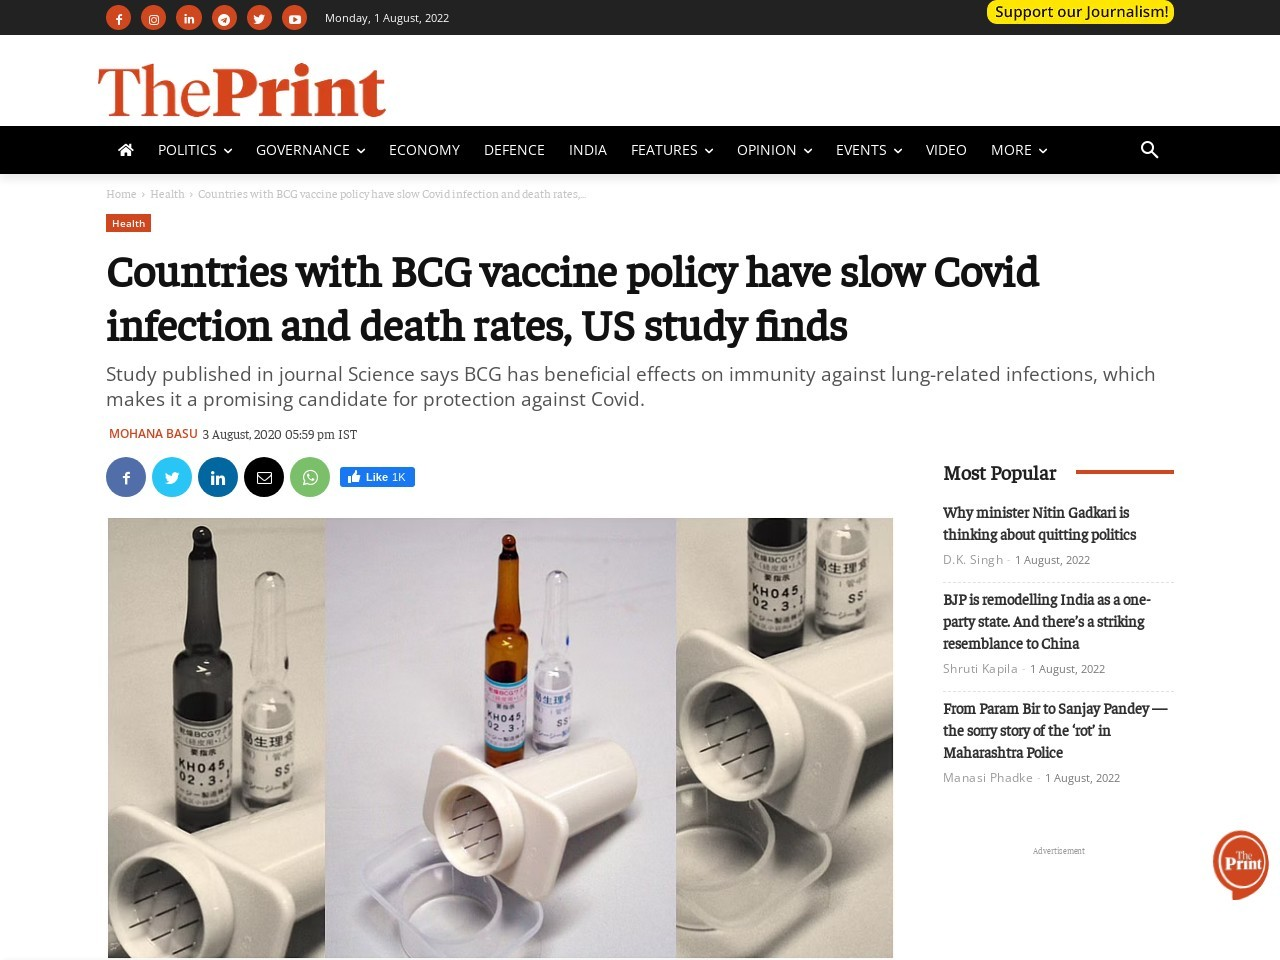 Countries with BCG vaccine policy have slow Covid infection and death rates, US study finds